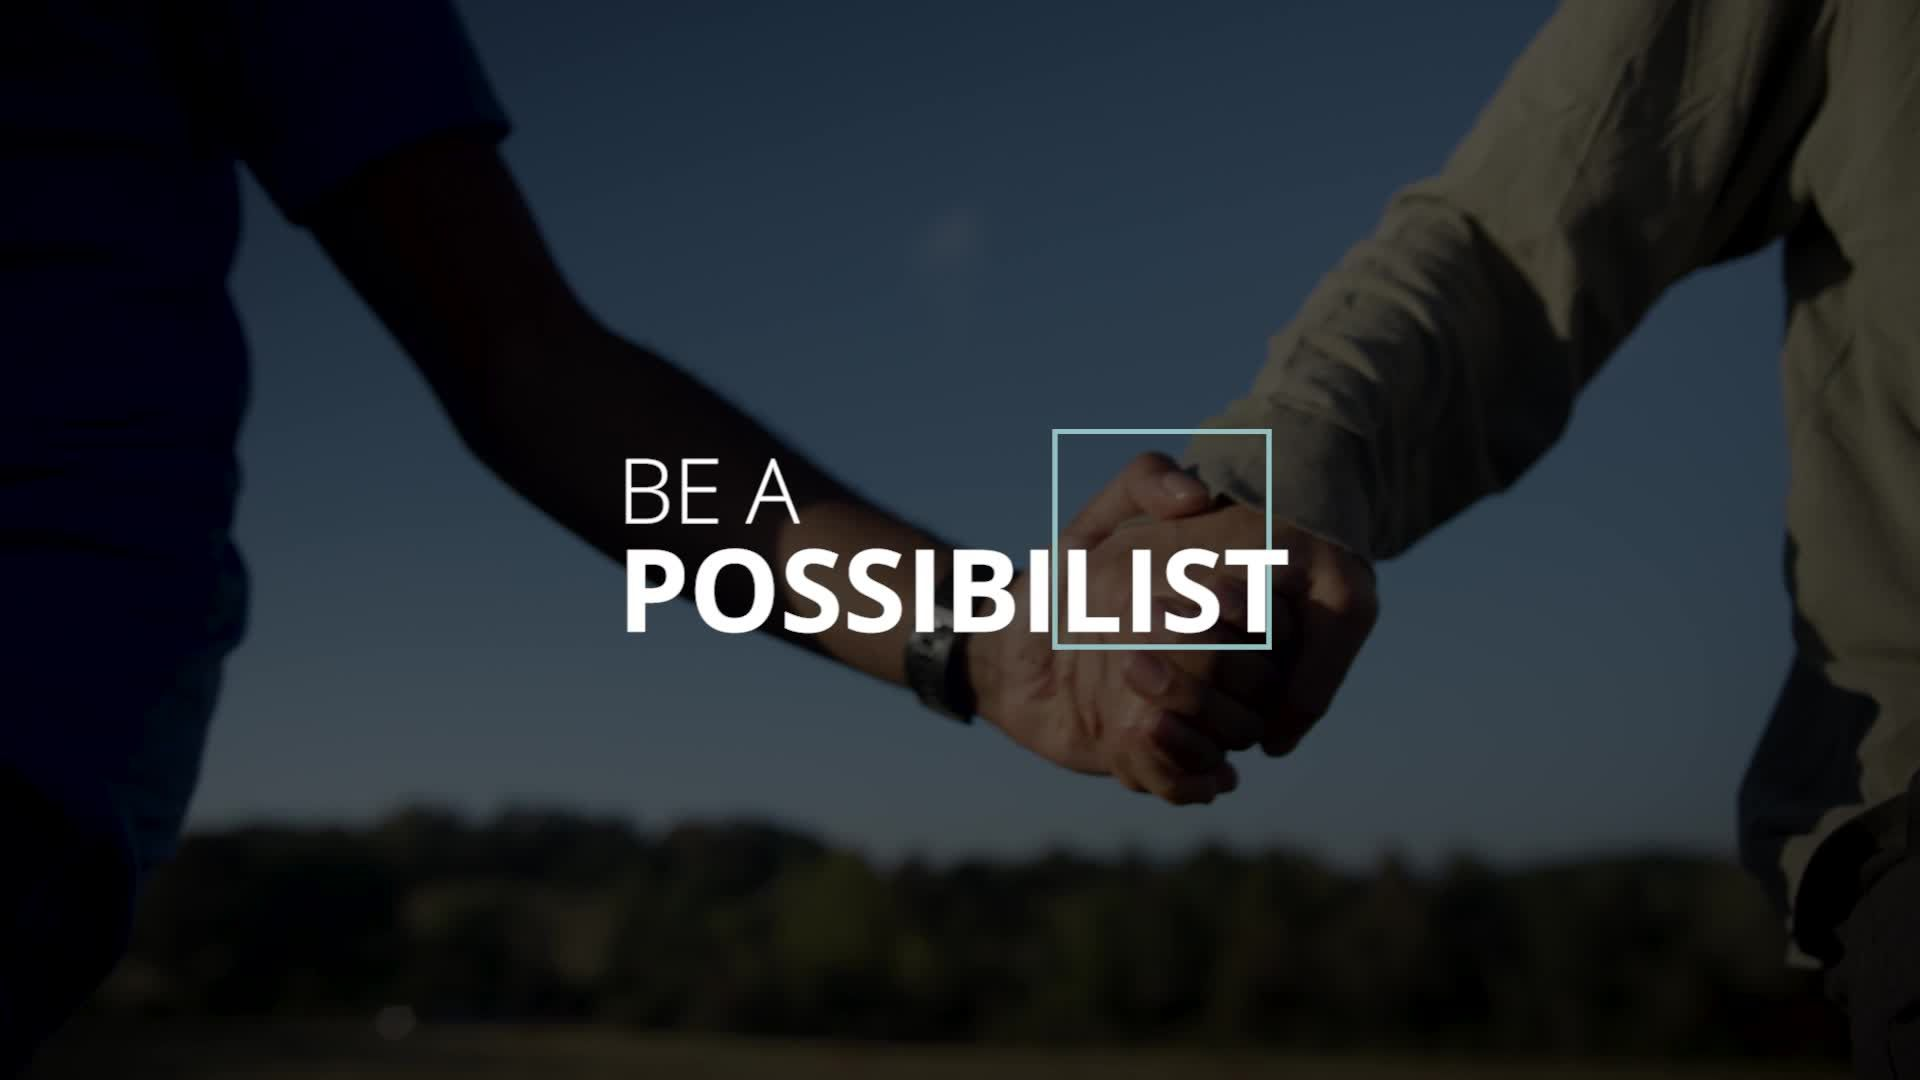 Be a Possibilist